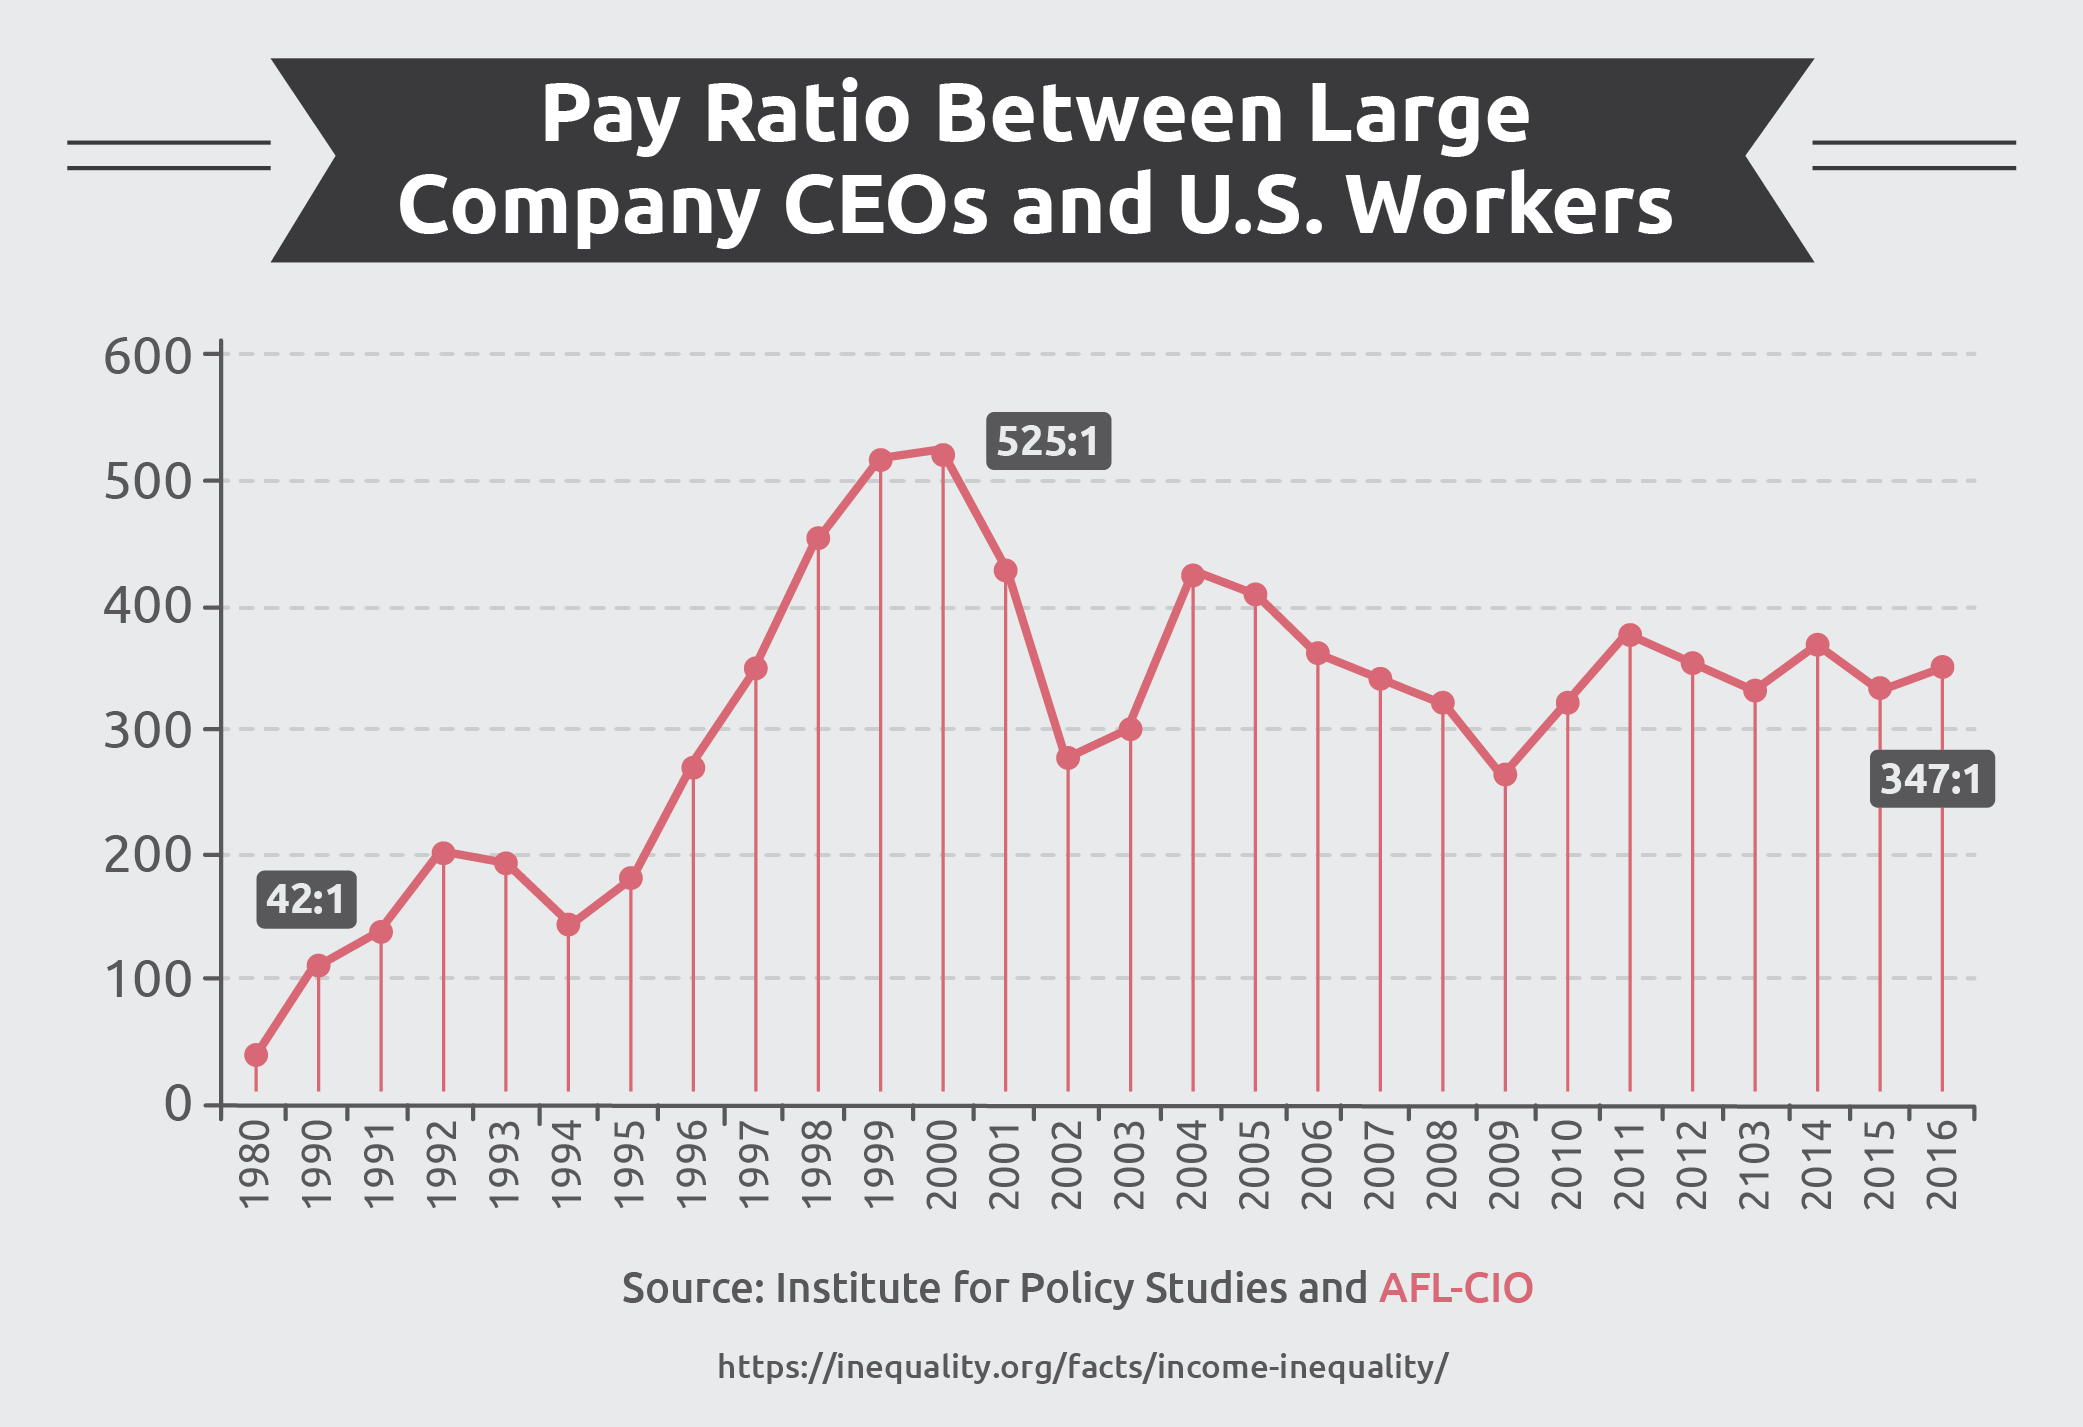 Pay Ratio Between Large Company CEOs and U.S. Workers